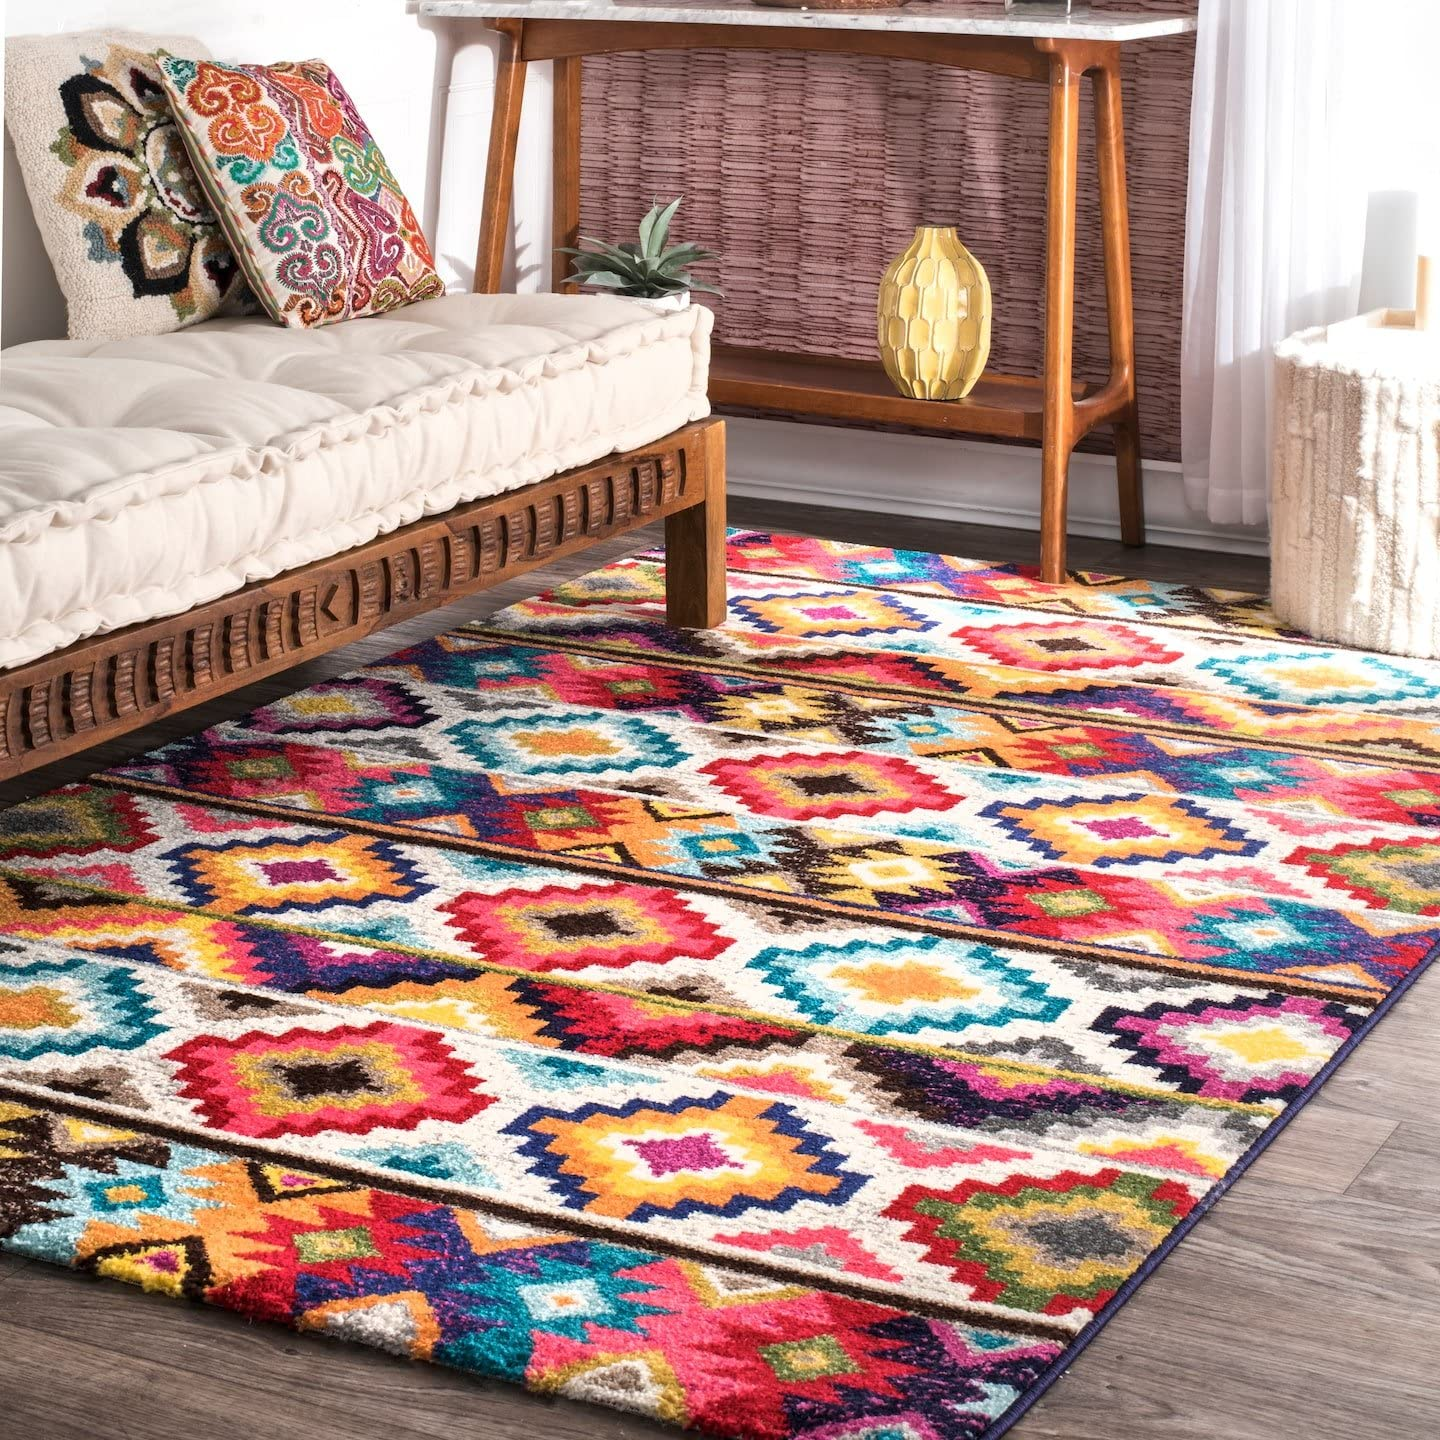 nuLOOM Ritzy Contemporary Retro Area Rug